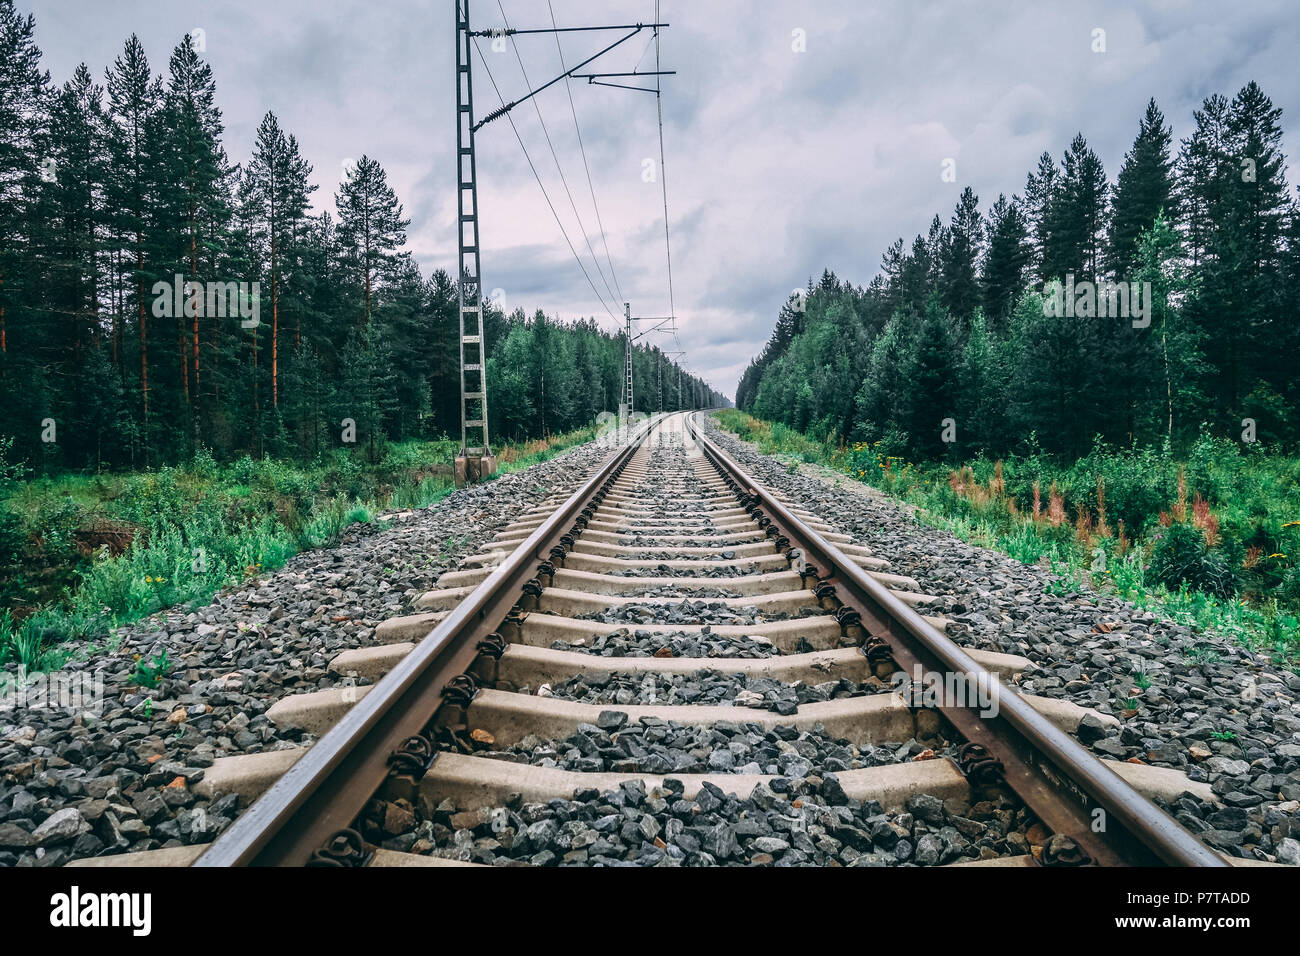 Finland, Railroad tracks whit electricity grid for the locomotives on a cloudy day - Stock Image